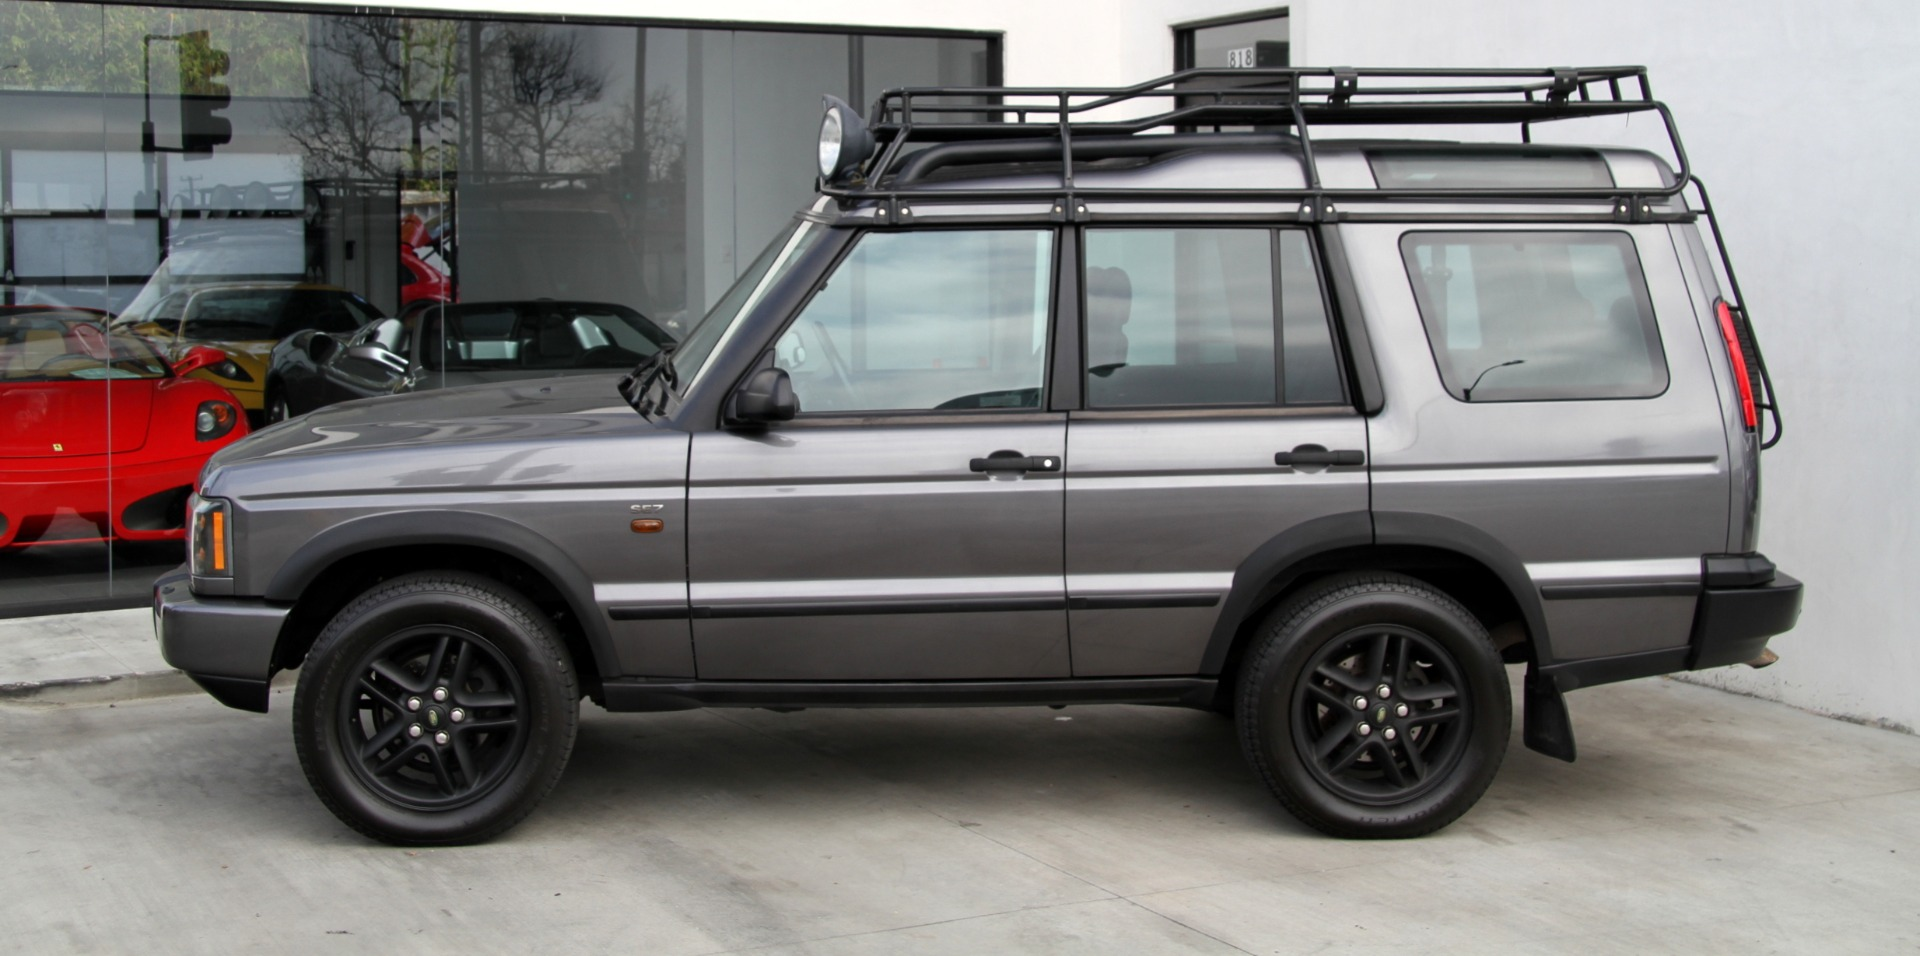 Free Air For My Tires Near Me >> 2004 Land Rover Discovery II SE7 Stock # 856998 for sale near Redondo Beach, CA | CA Land Rover ...